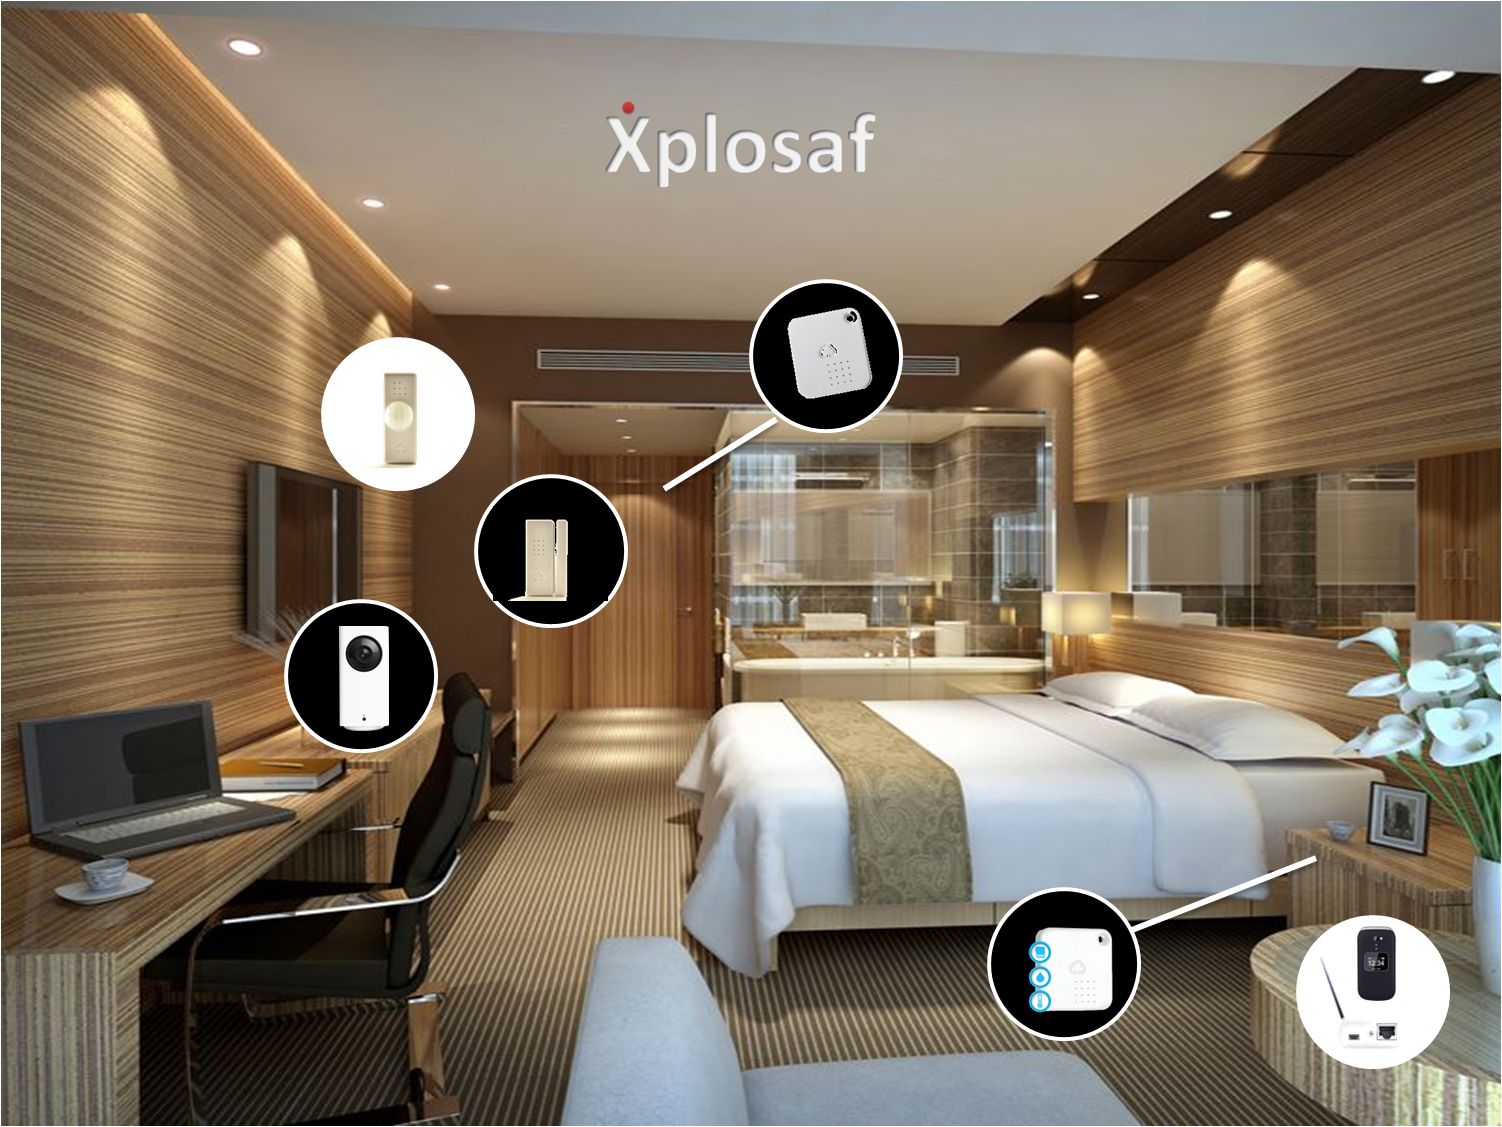 LUXURY APARTMENTS AND 4 / 5 STAR HOTEL STAYS - WIRLESS HUB | TEMEPERATURE SENSOR | SMART CAM | INFRARED SENSOR | DOOR SENSOR